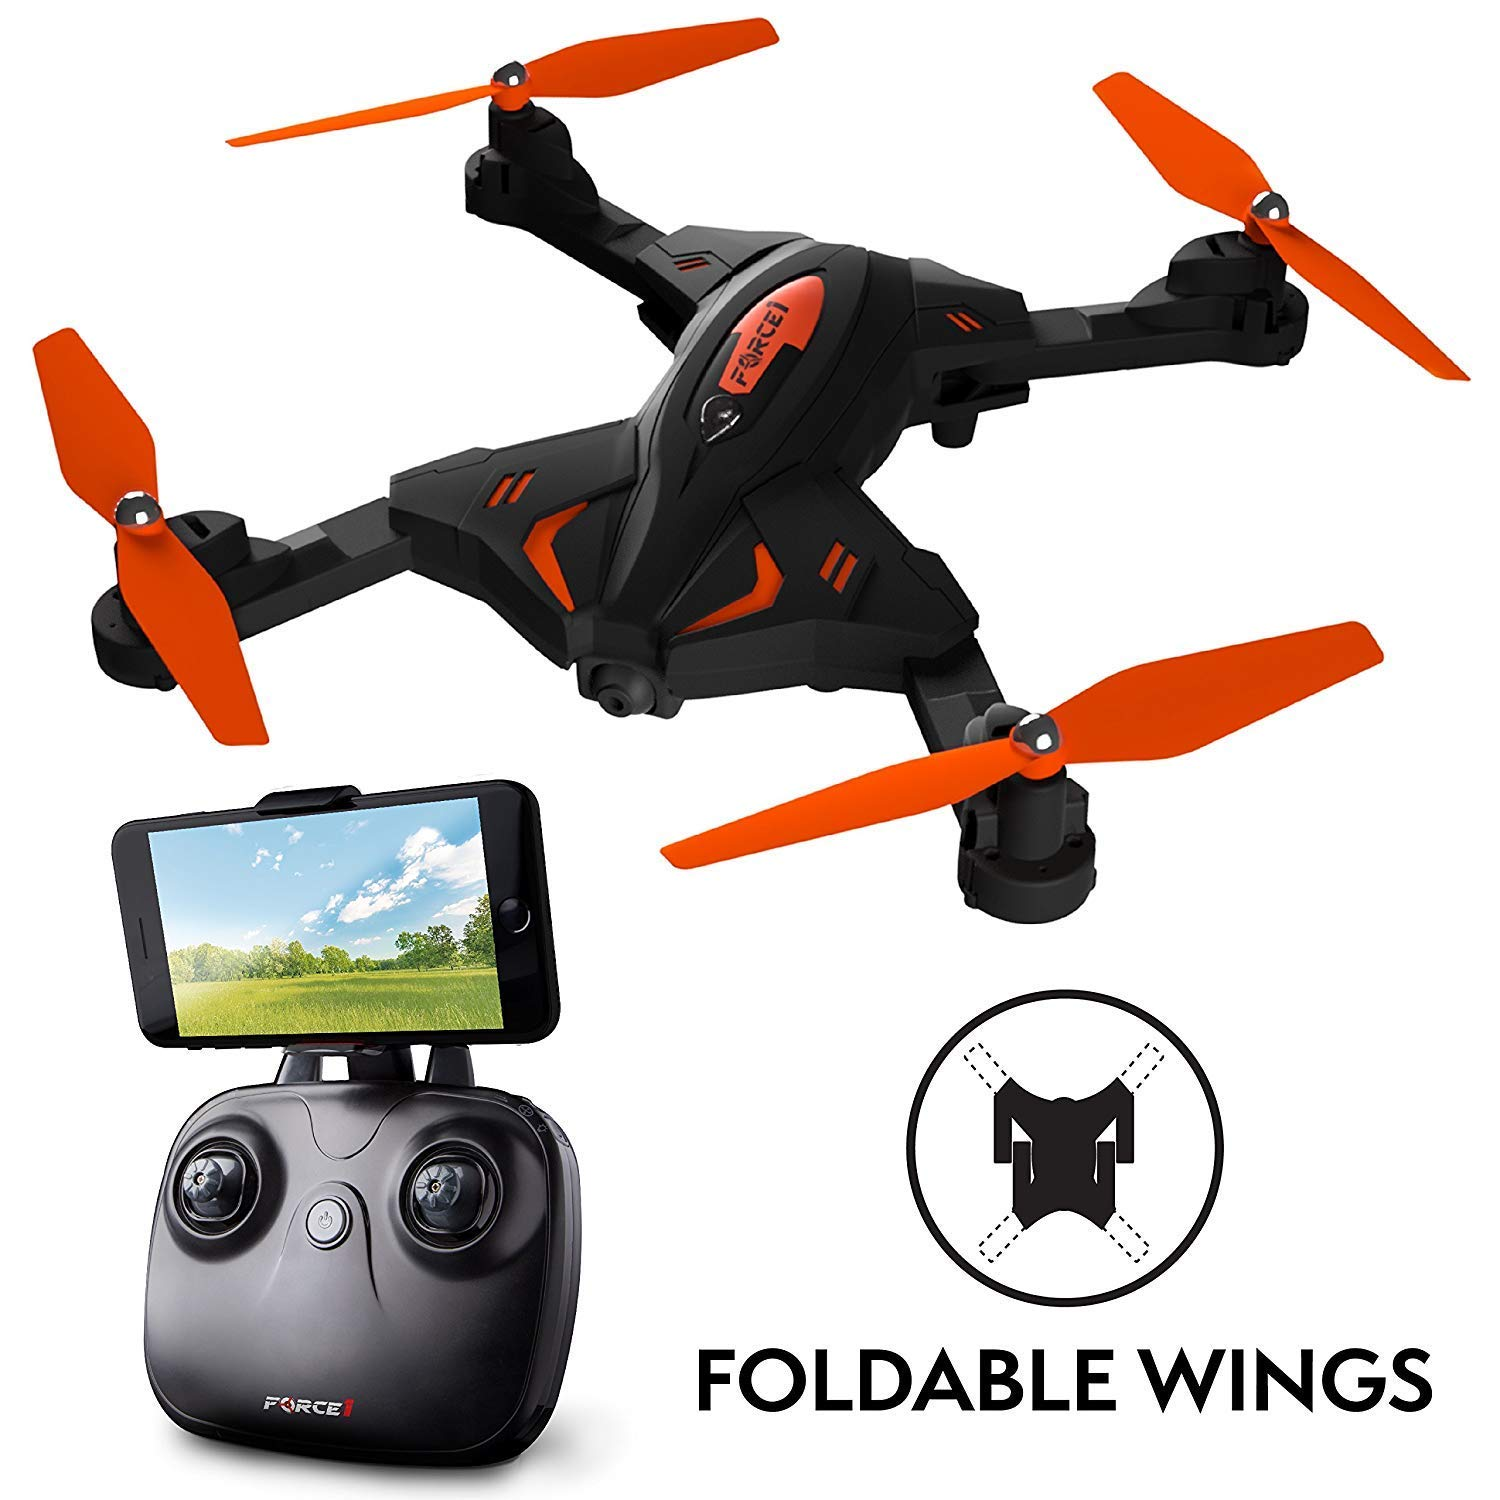 Travel photography drone - what every traveler wants as a gift this holiday season